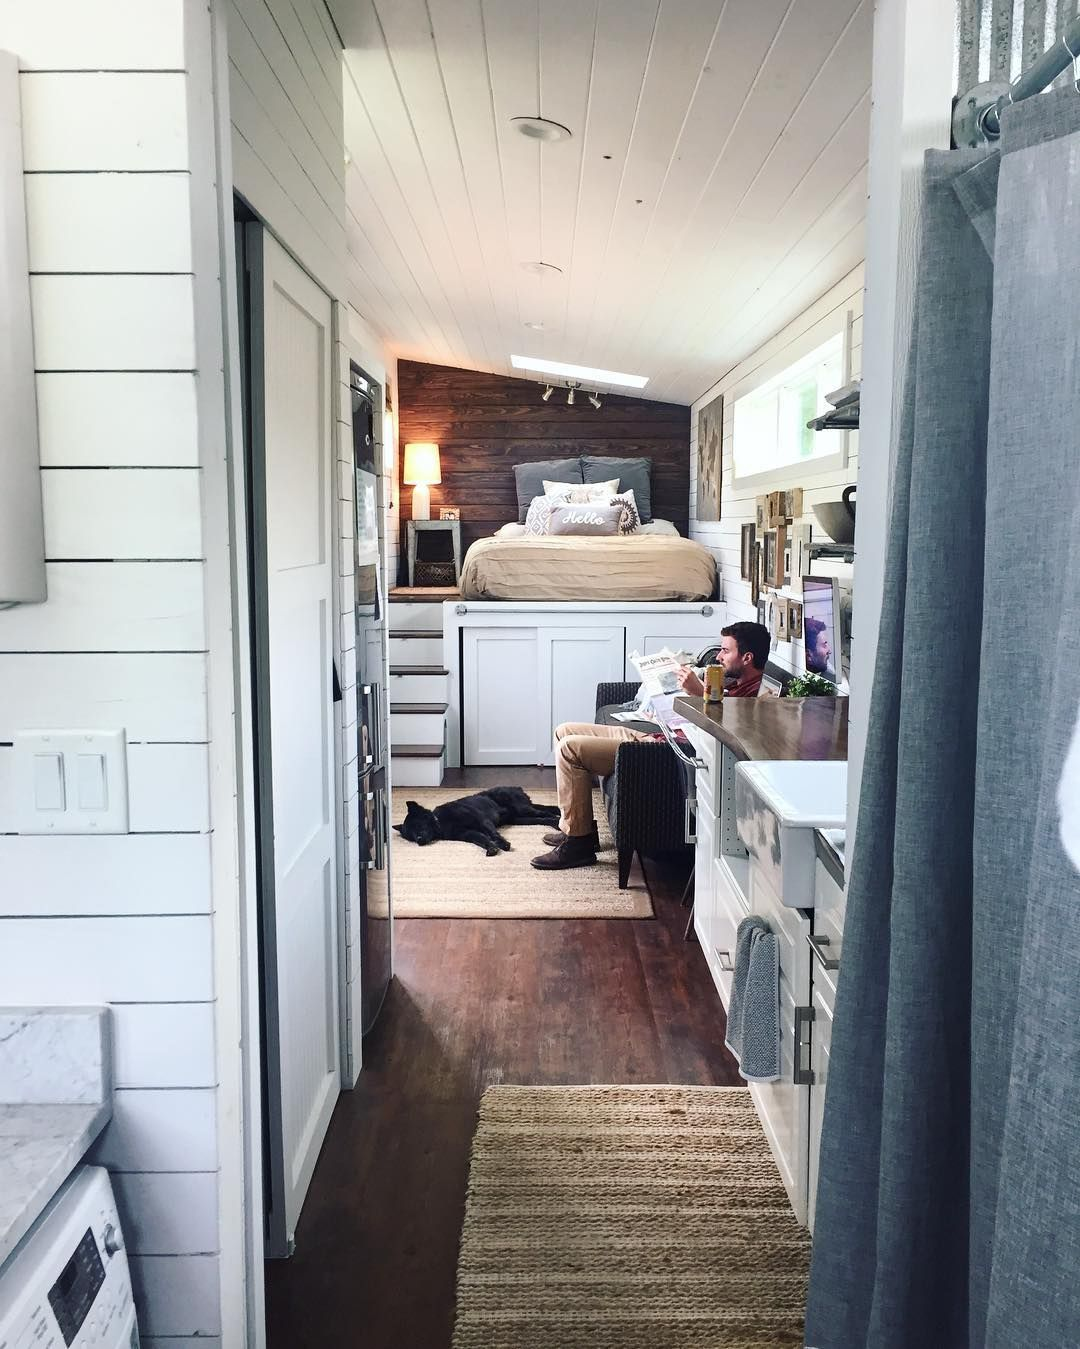 971 Likes 44 Comments Brian Sky S Tiny House Story Wanderingonwheels On Instagram When You Wa Tiny House Living Tiny House Design Tiny House Interior